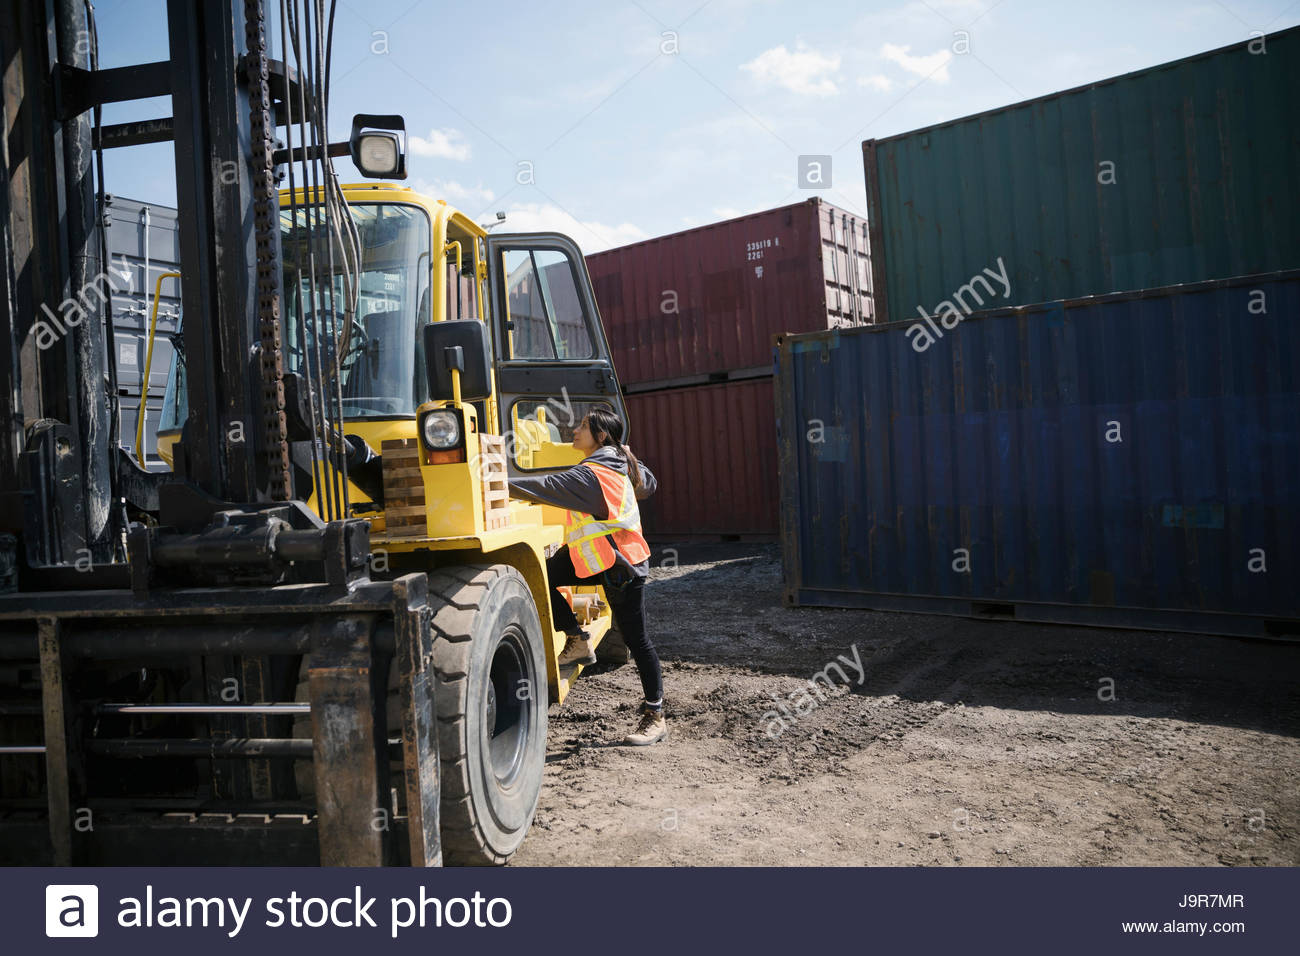 Female forklift driver in sunny industrial container yard - Stock Image